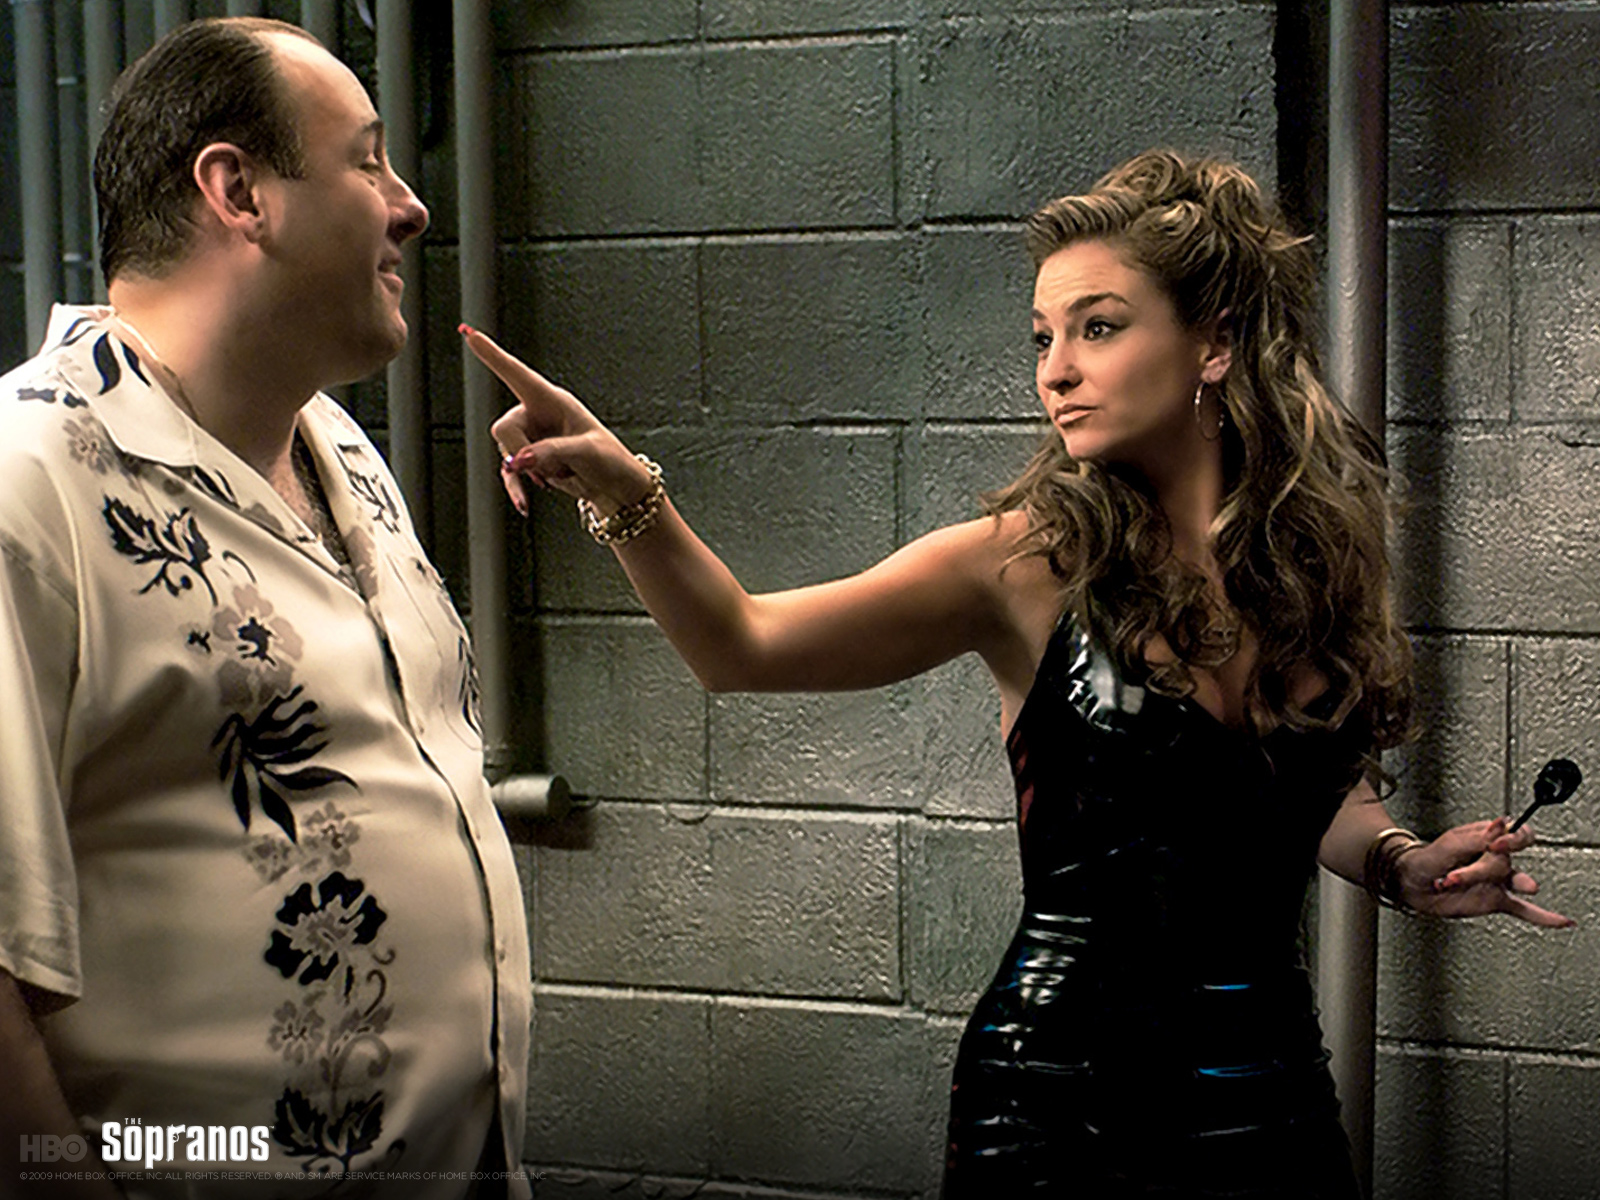 The Sopranos wallpaper 7